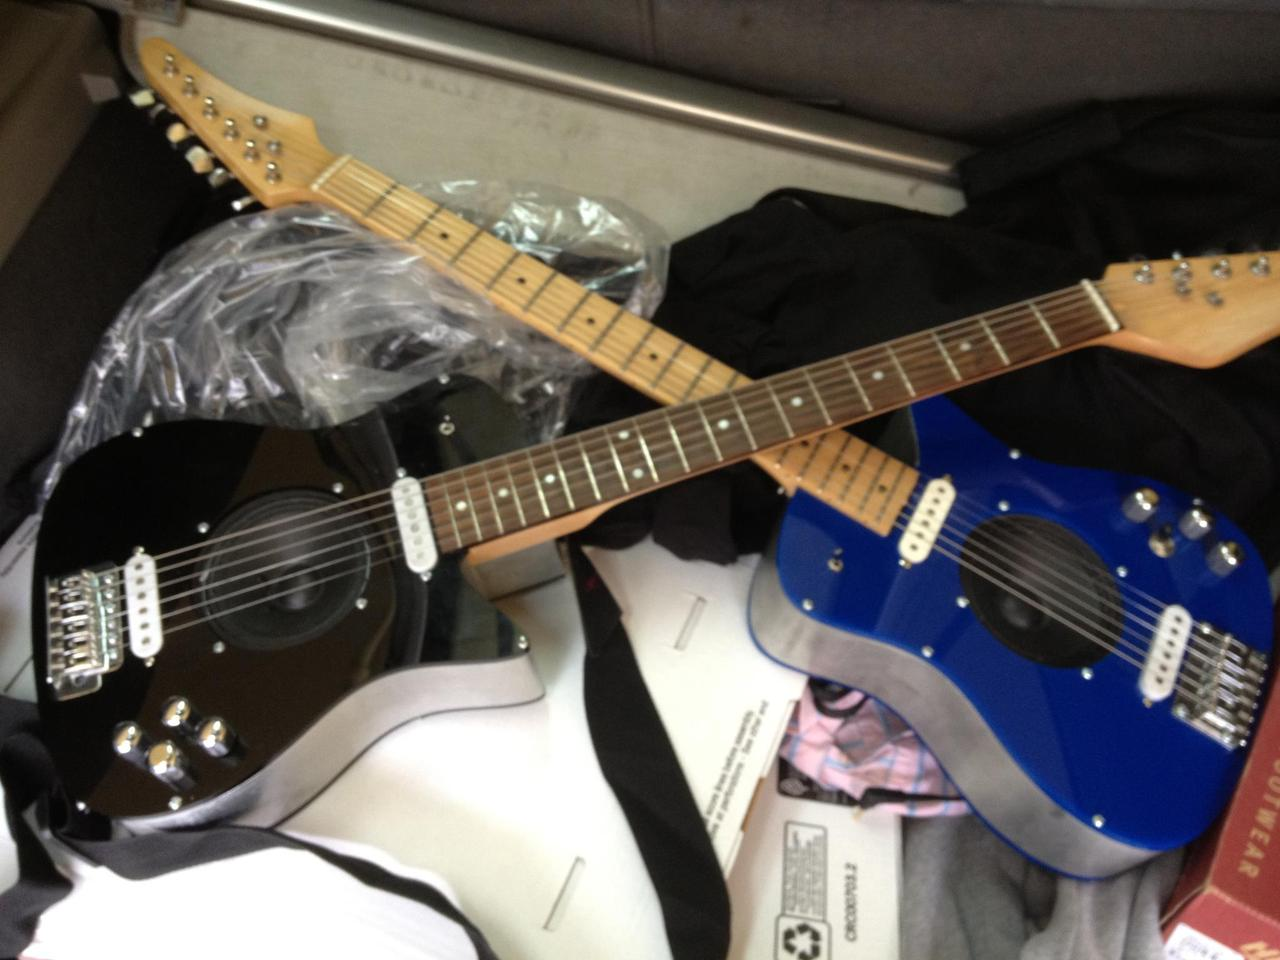 Black Unlimited with Rosewood fingerboard and blue edition with Maple